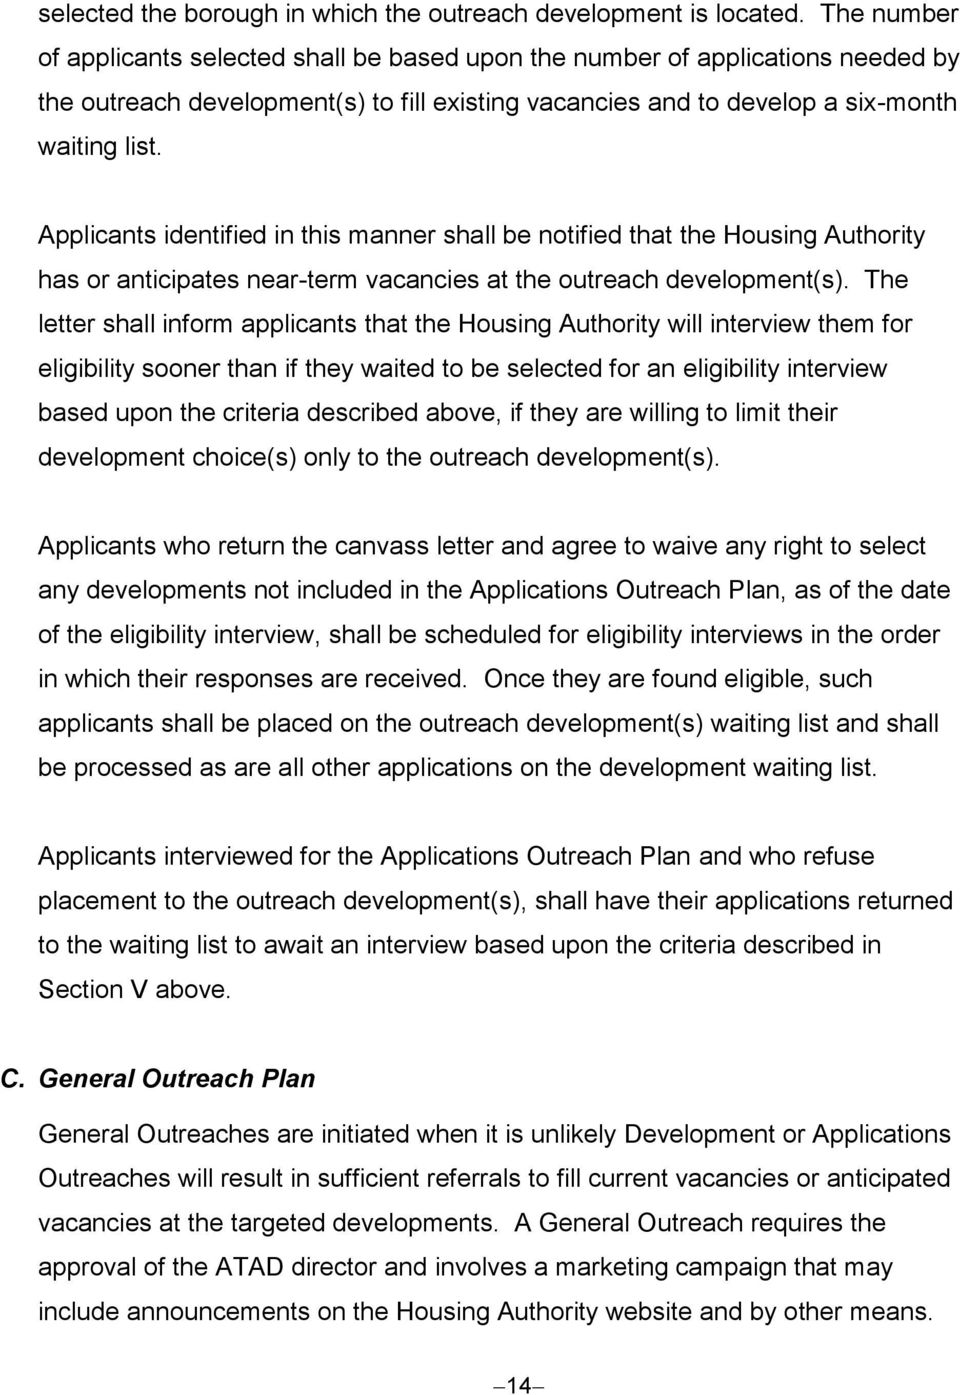 Applicants identified in this manner shall be notified that the Housing Authority has or anticipates near-term vacancies at the outreach development(s).